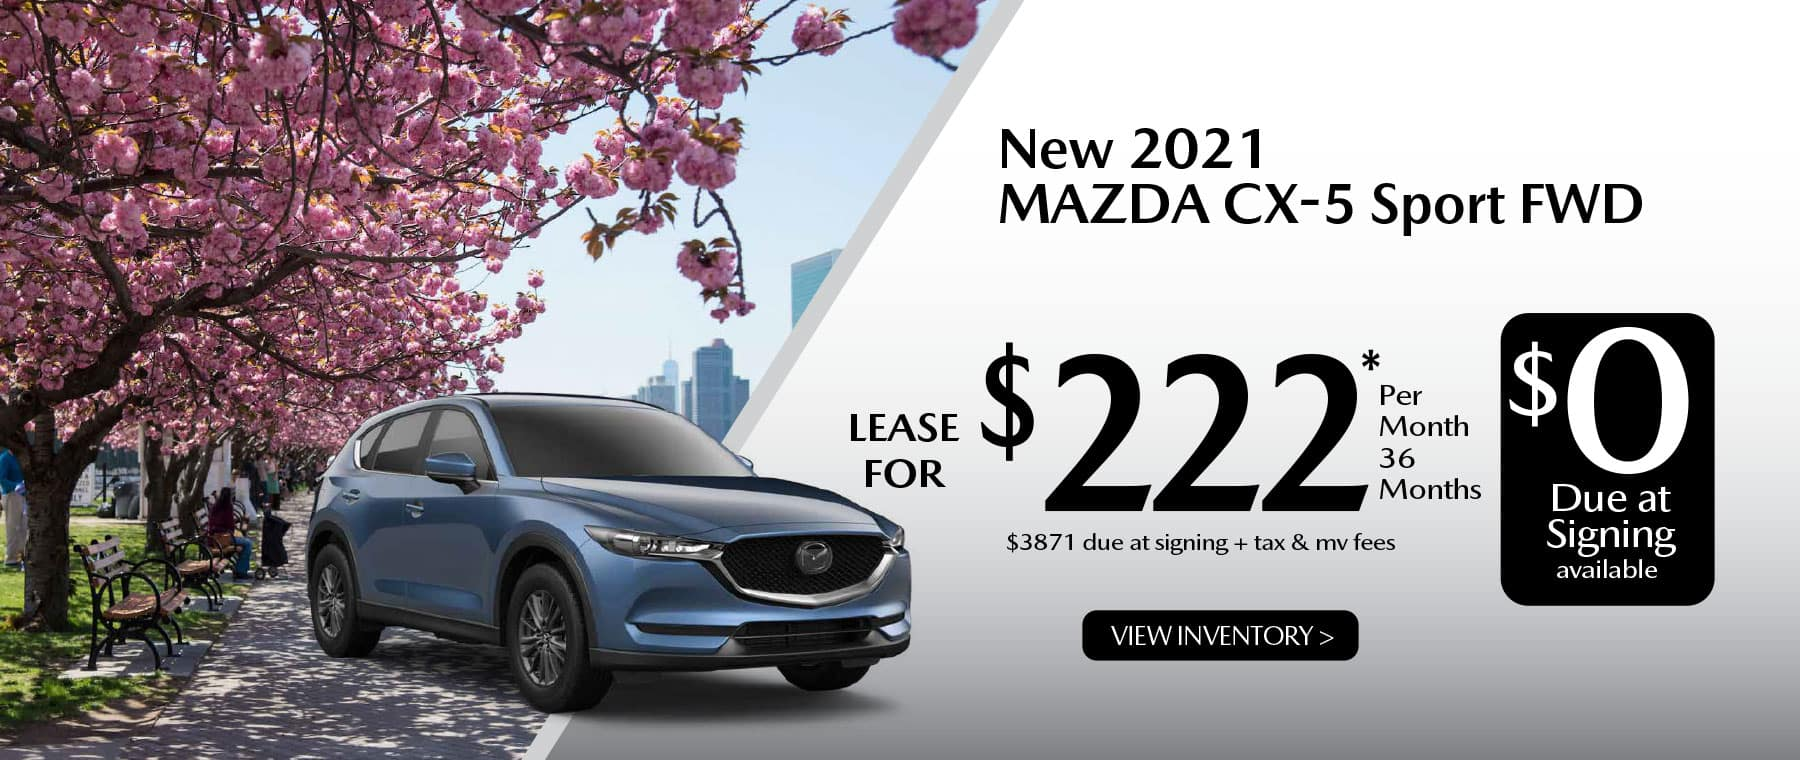 04 CX-5 hi New Lease Special Offer Garden City Mazda NY